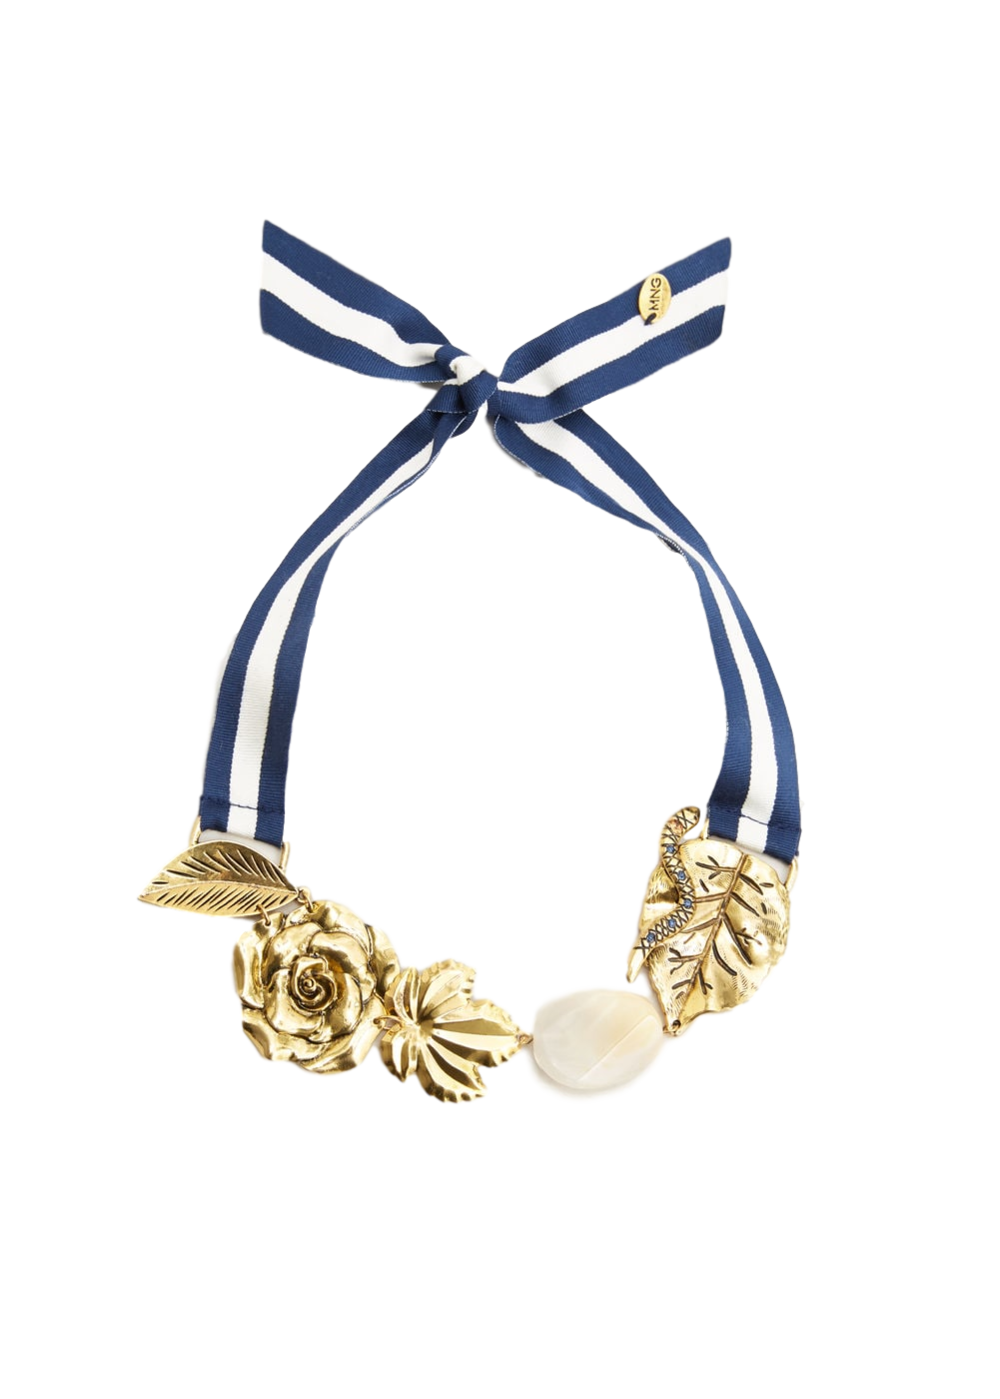 http-__shop.mango.com_us_women_jewellery-necklaces_bow-flowers-necklace_83073528.html_c=OR&n=1&s=accesorios.accesorio;48,448_clipped_rev_1.png